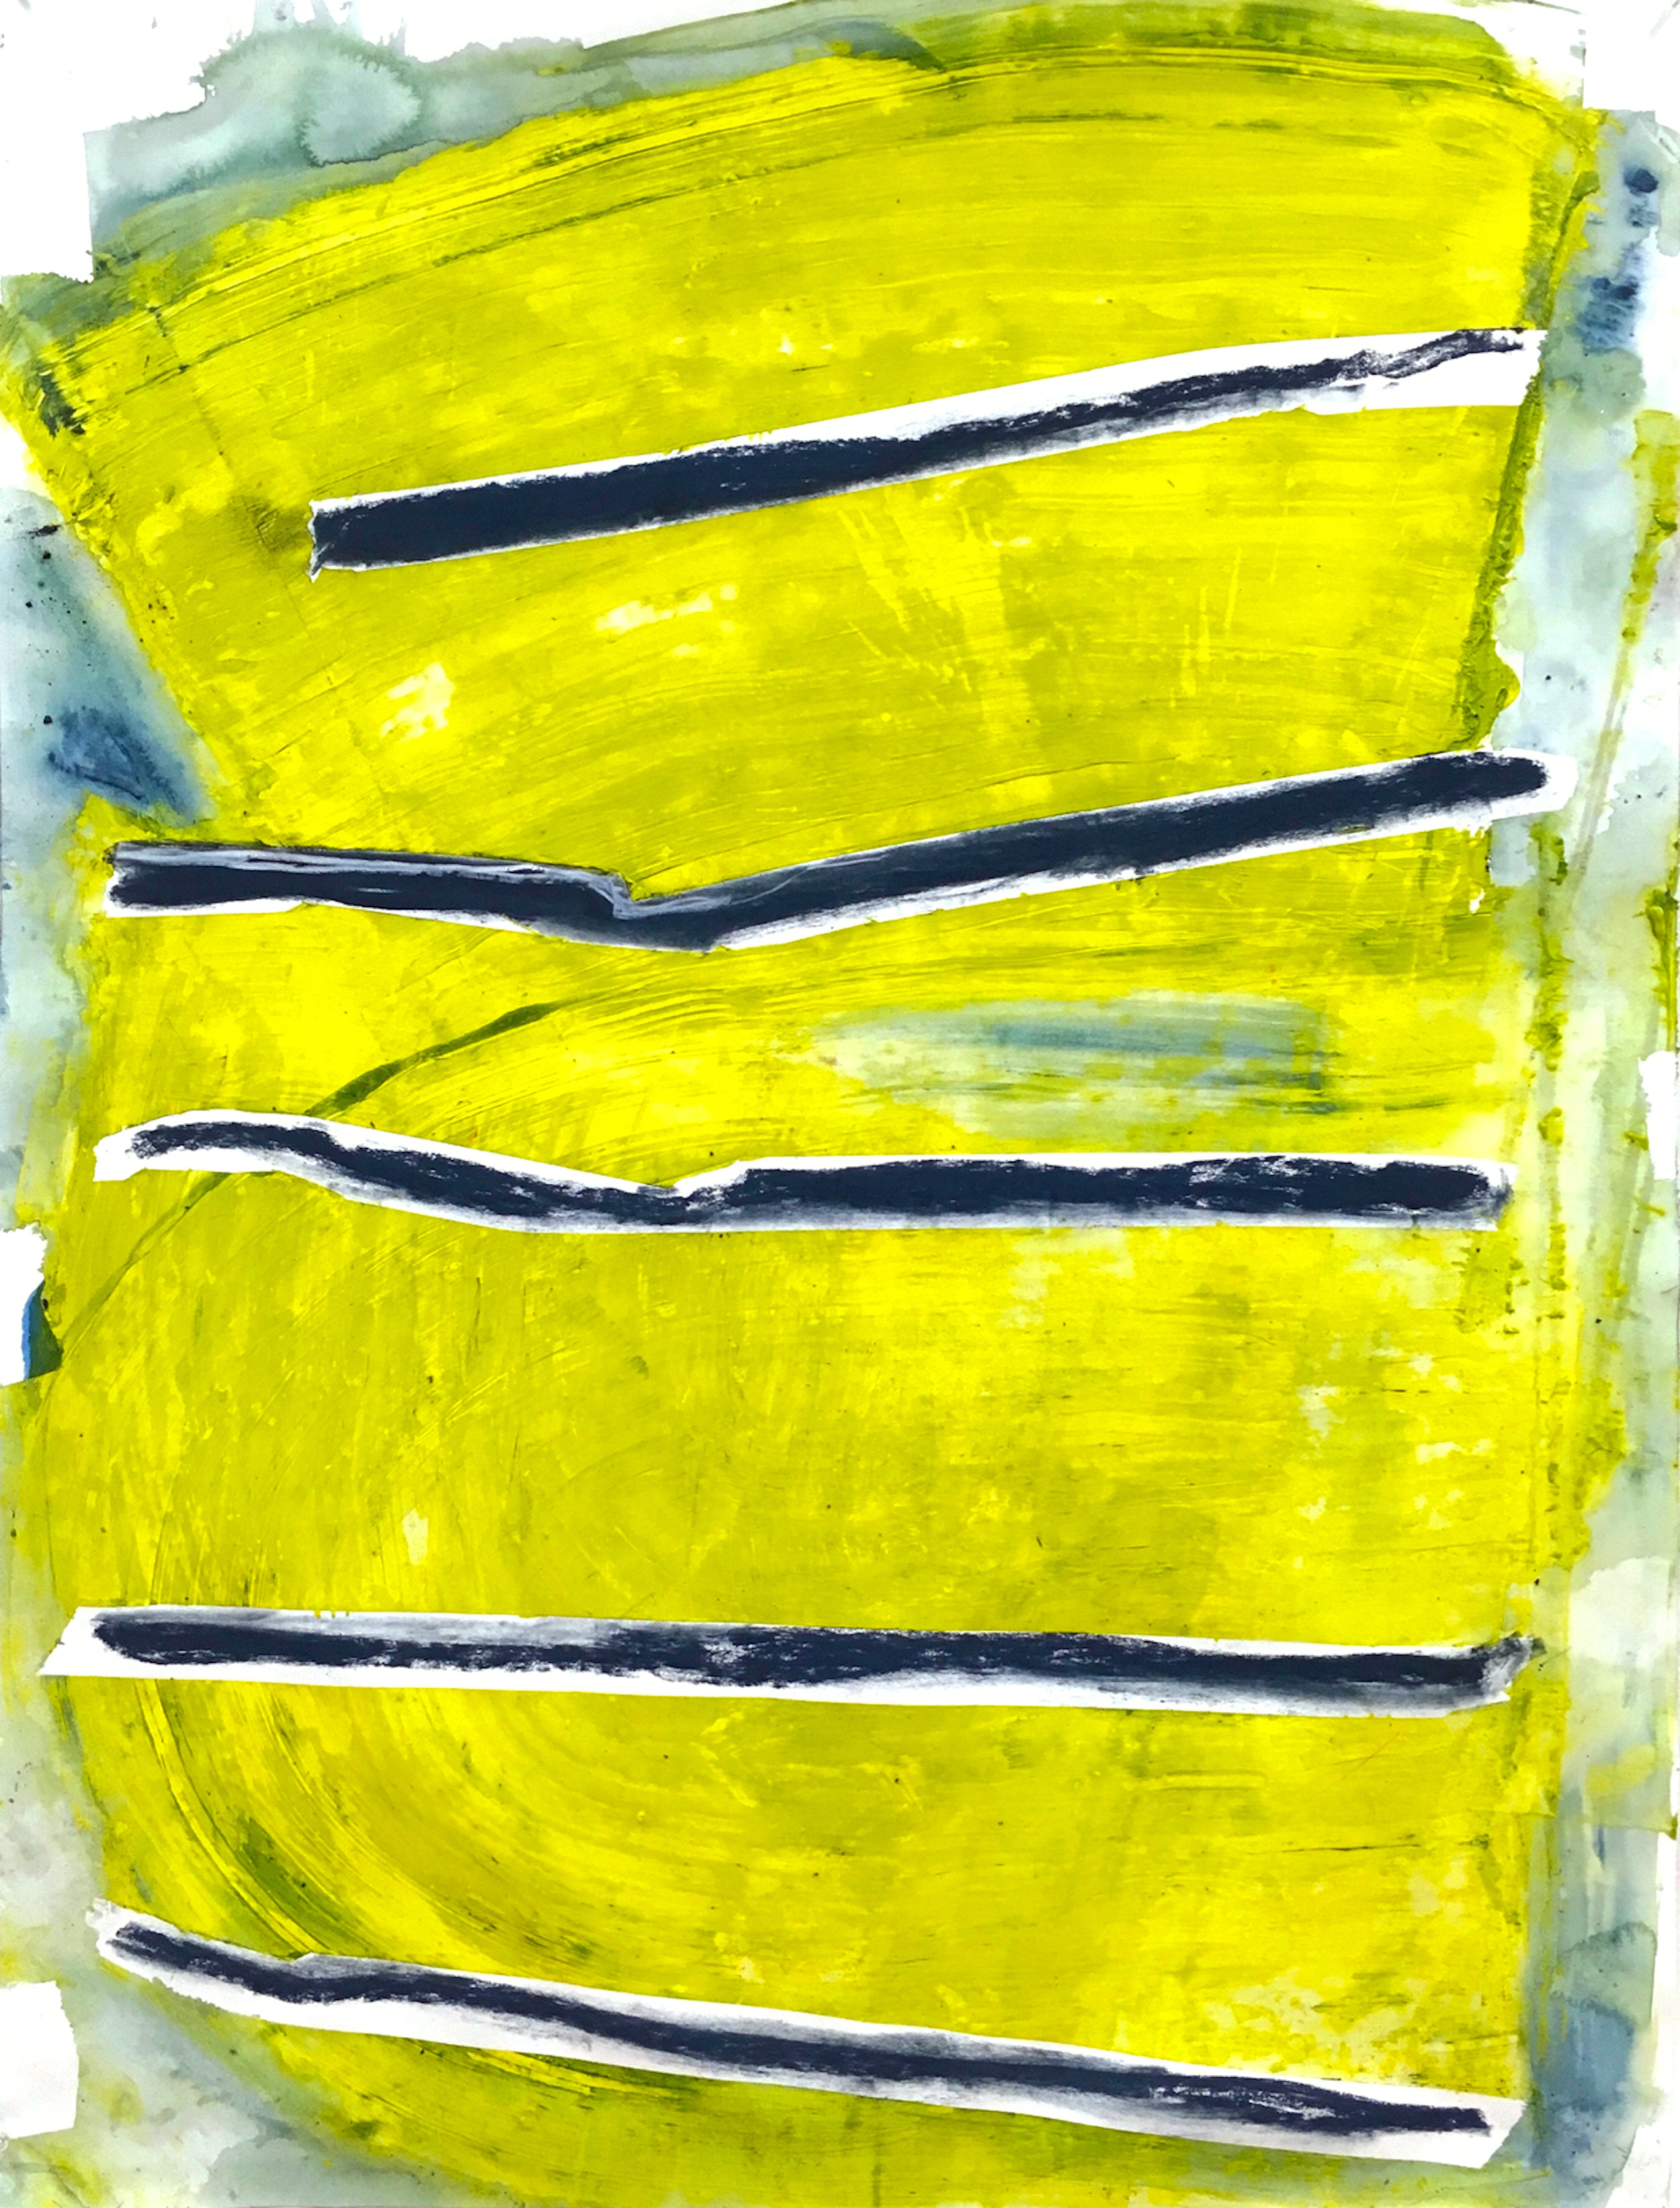 (Sold) Bars Against Chartreuse